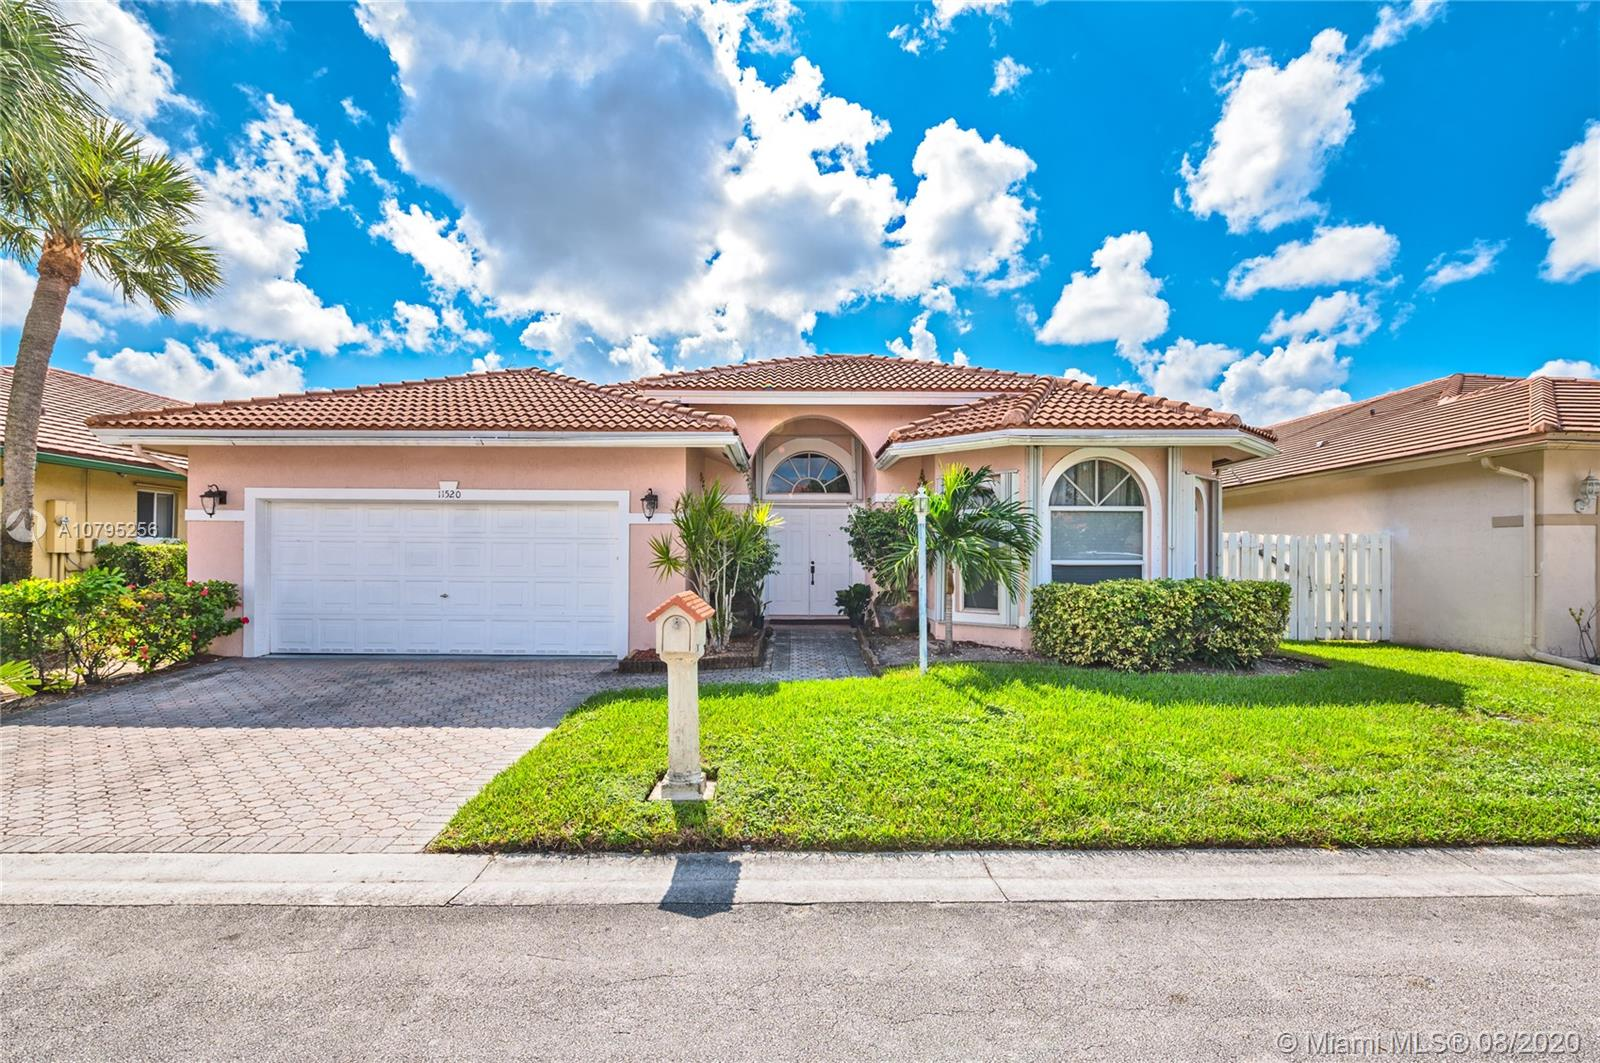 11520 SW 10th St, Pembroke Pines, FL 33025